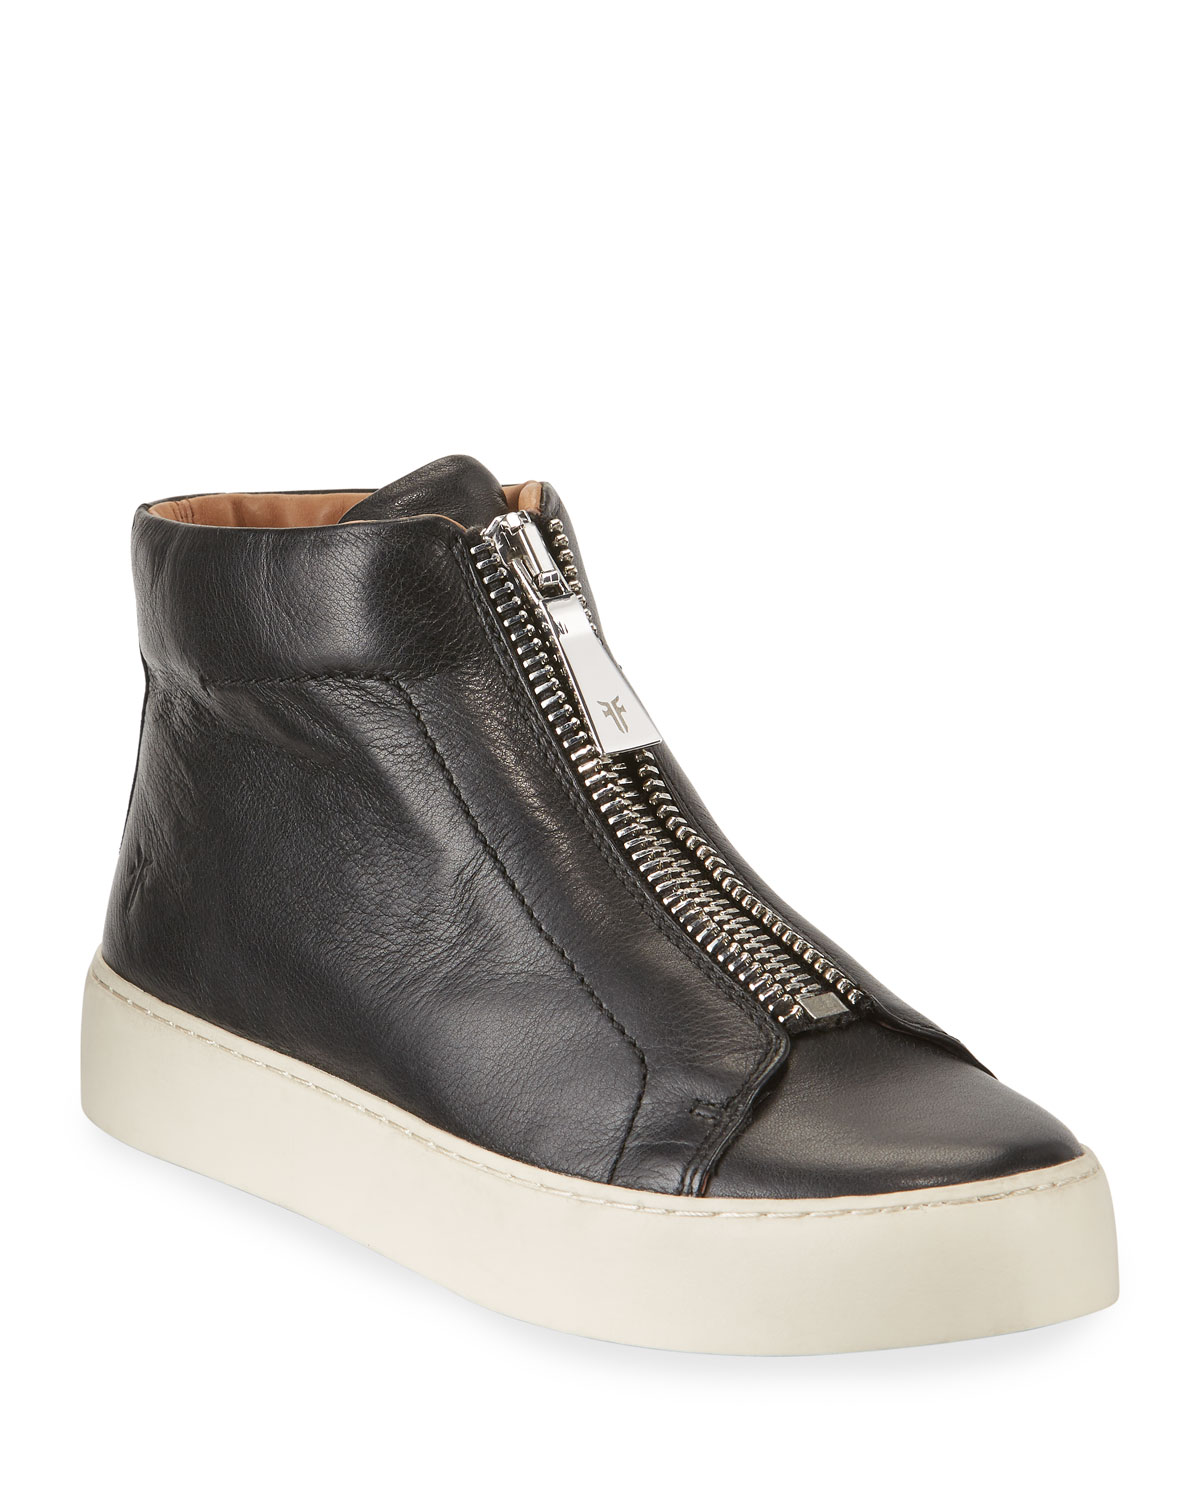 Frye Sneakers LENA LEATHER ZIP HIGH-TOP SNEAKERS